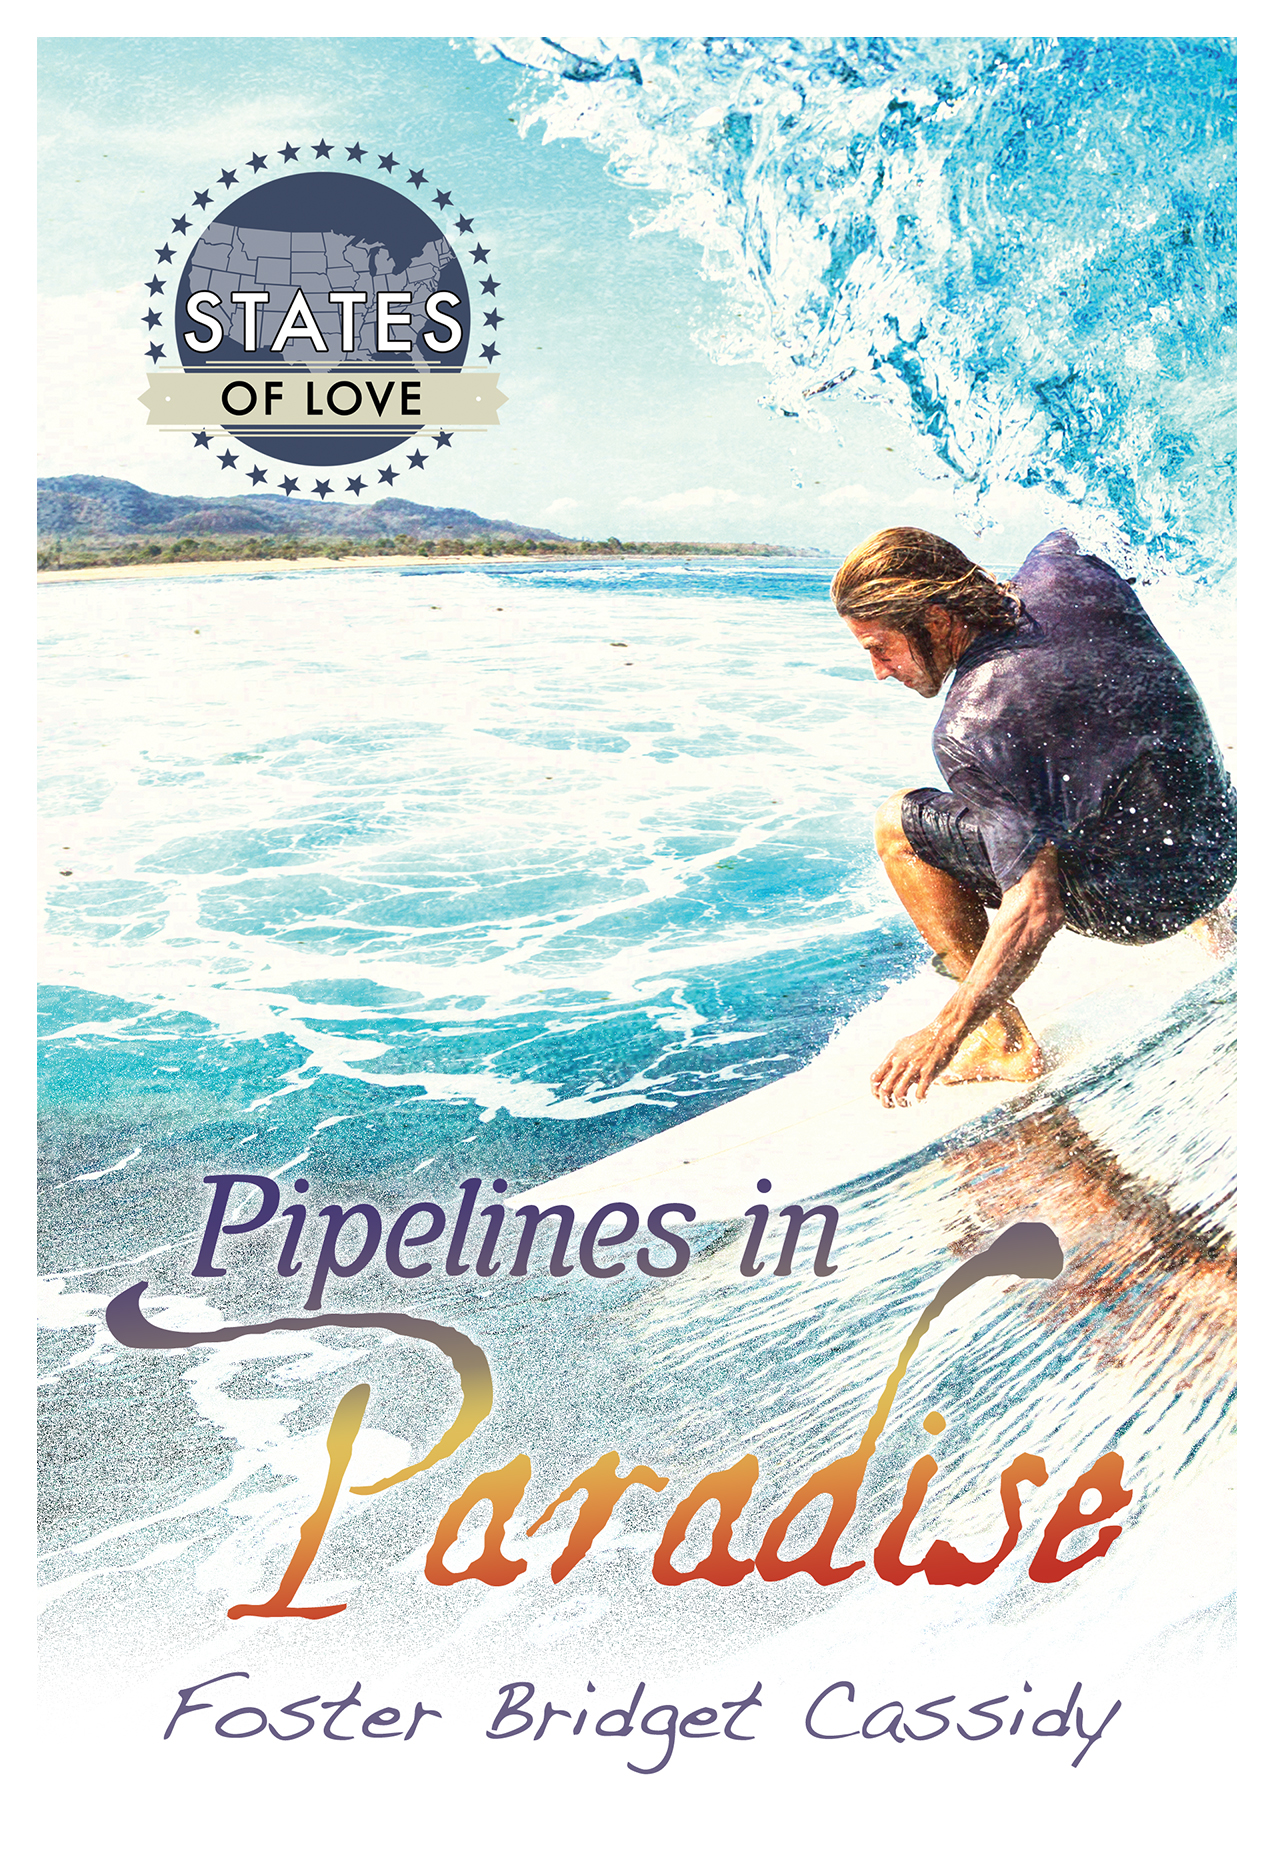 Pipelines in Paradise by Foster Bridget Cassidy